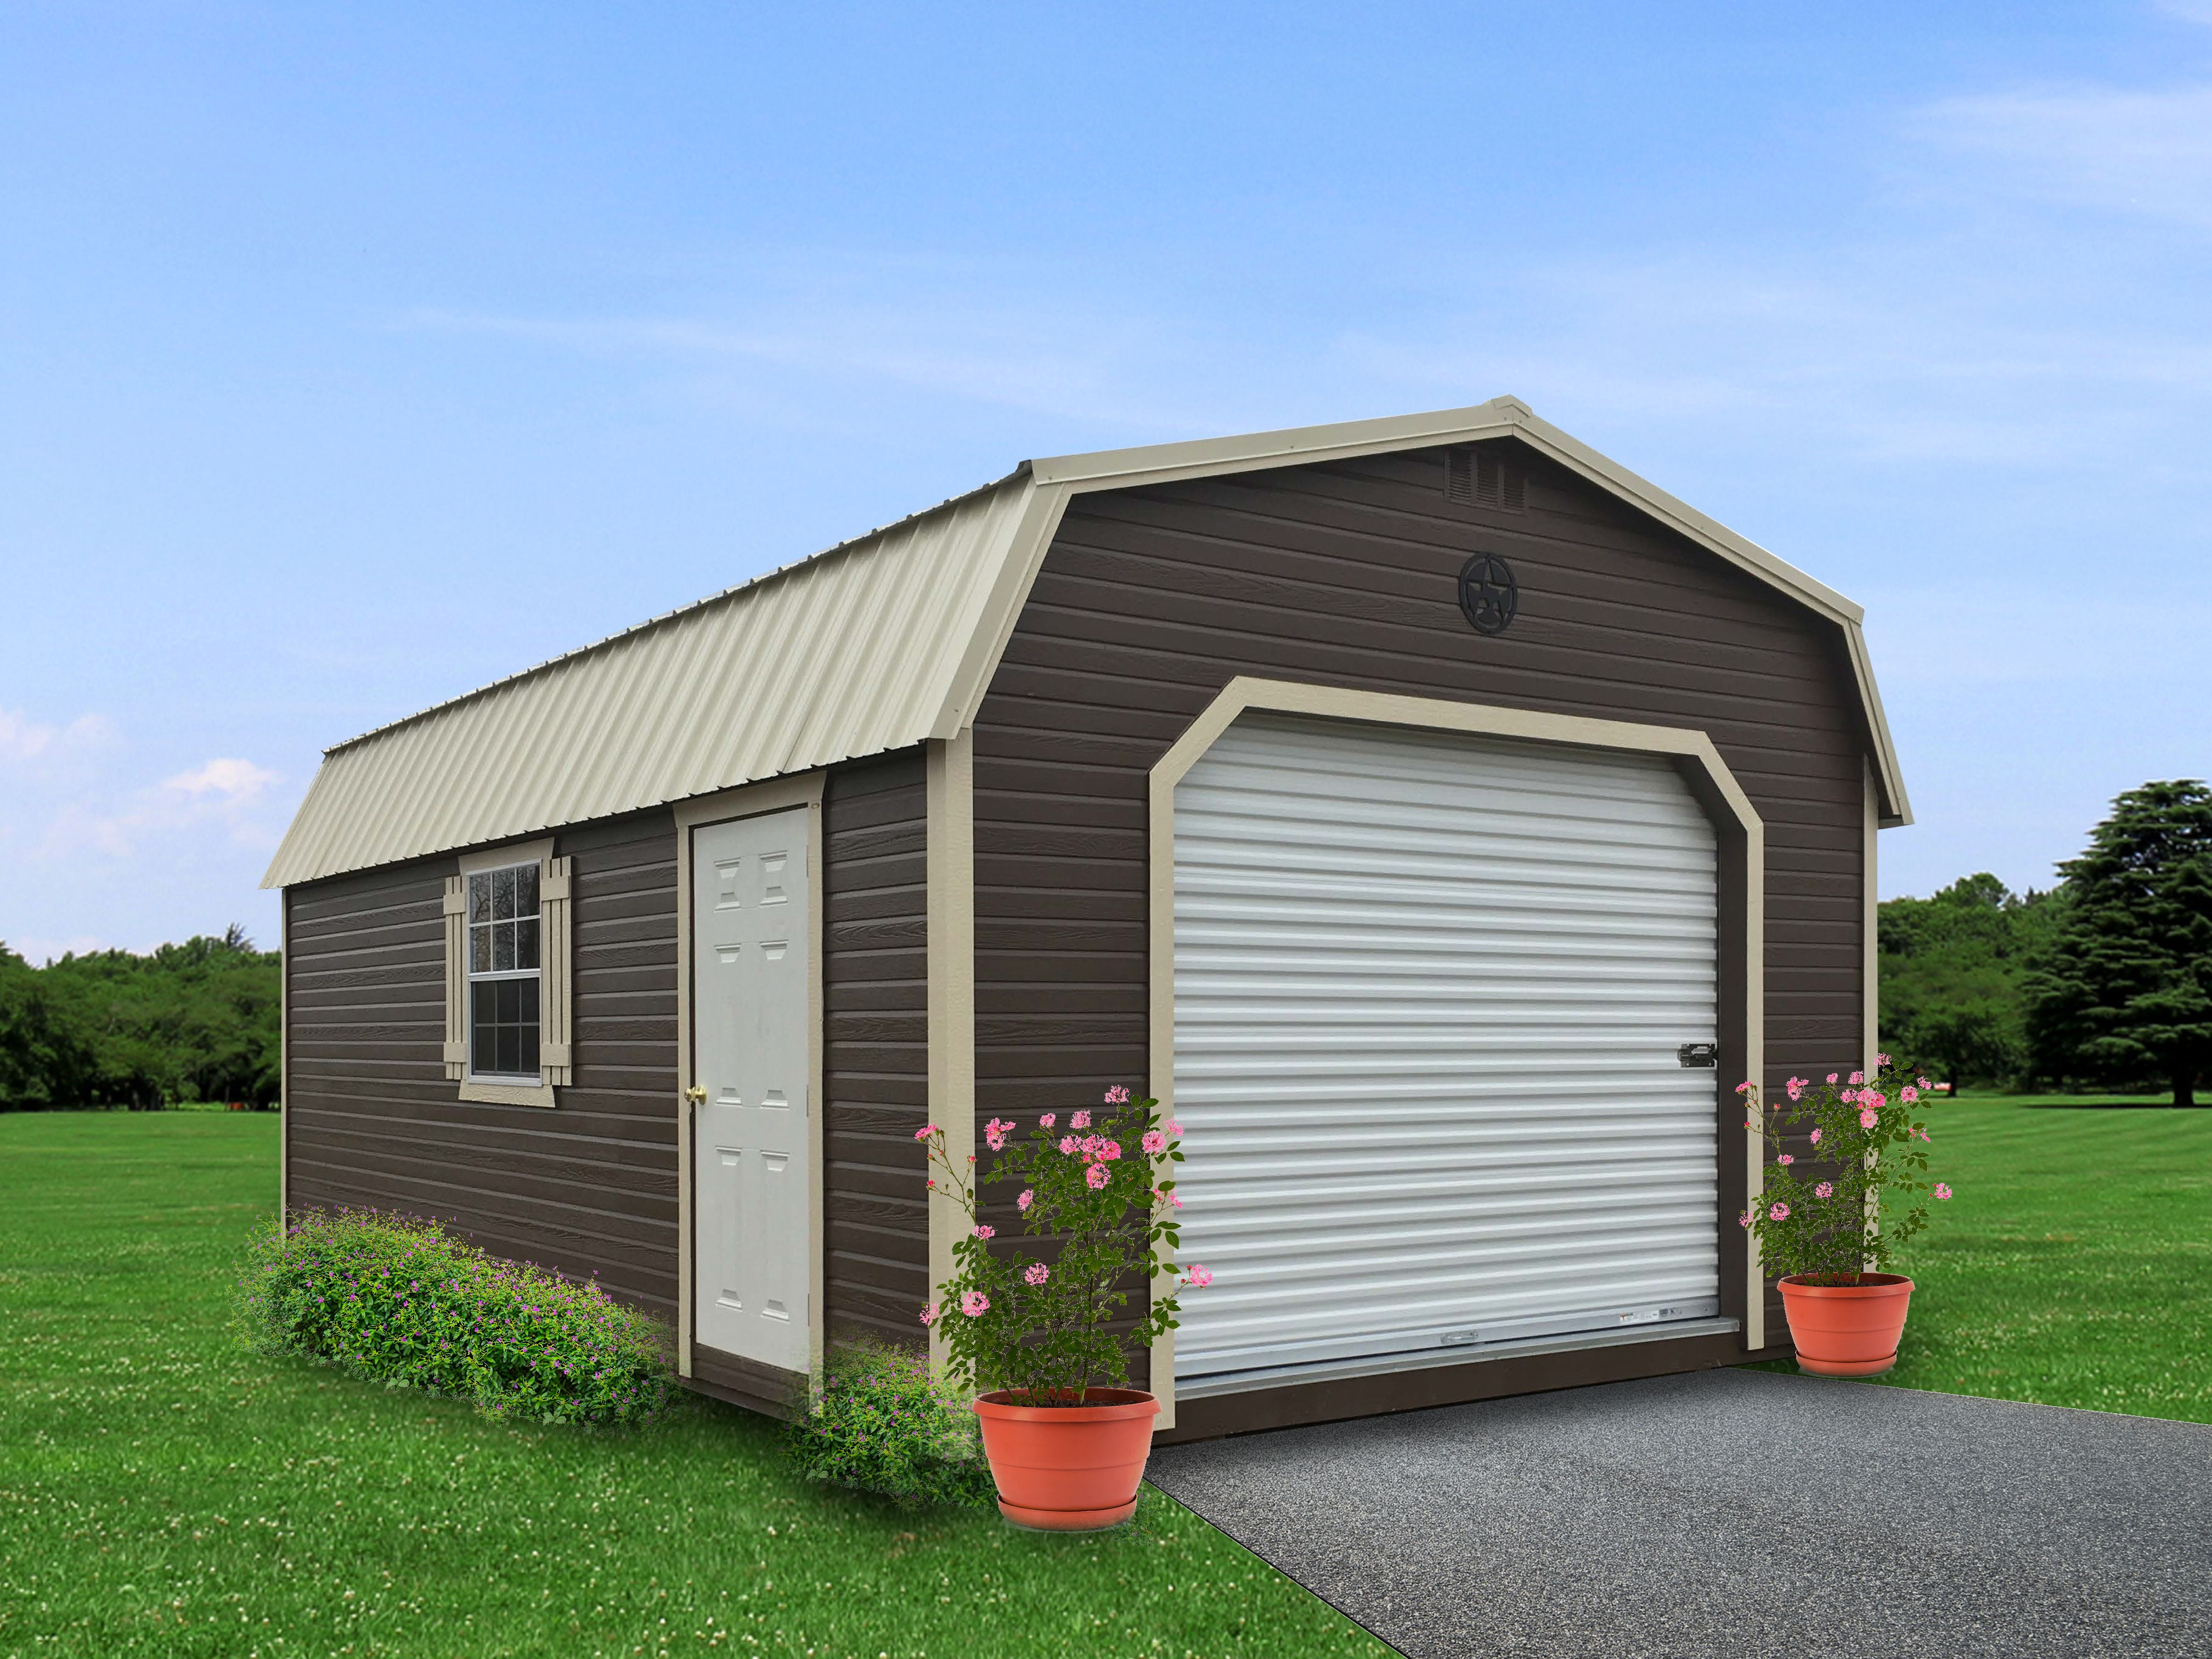 Painted Dutchlap Lofted Garage